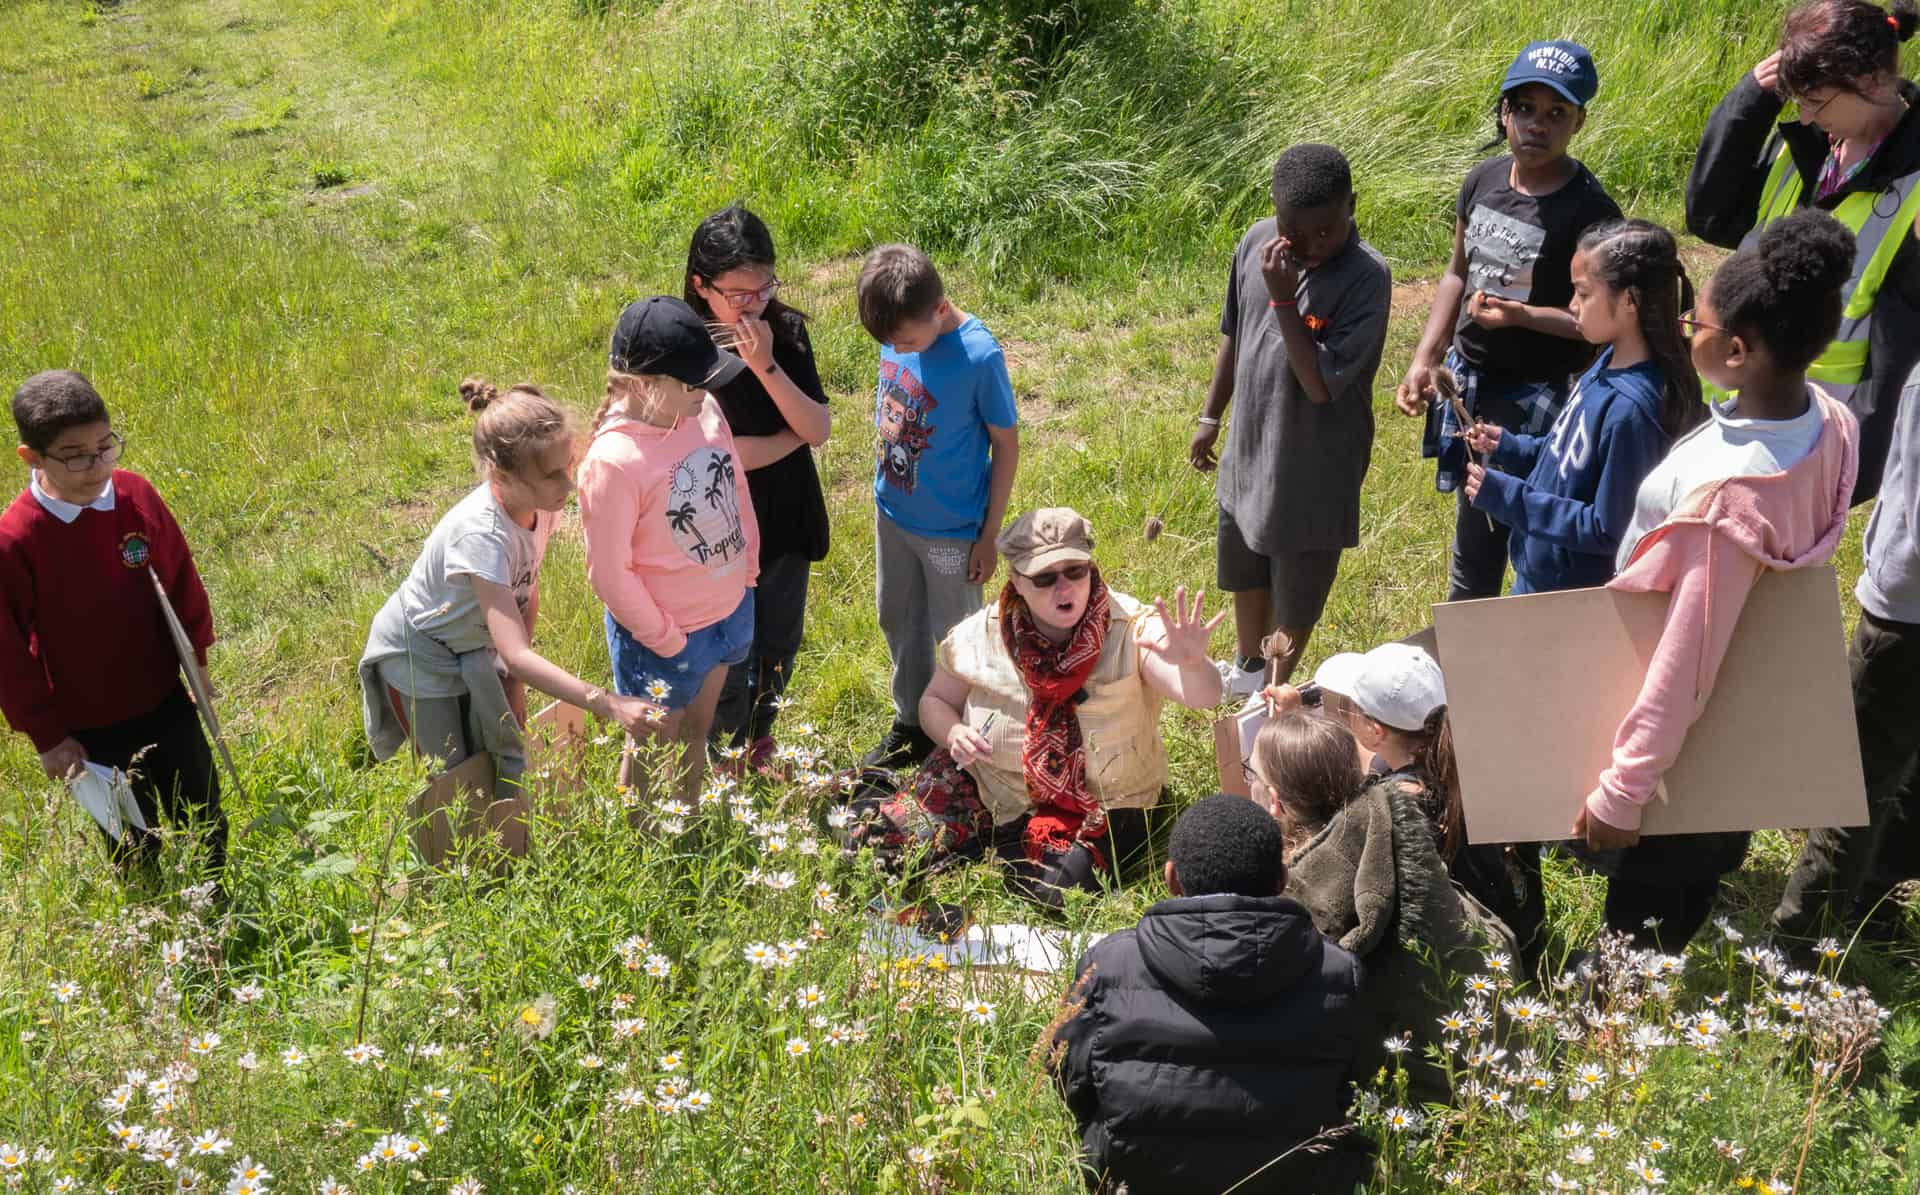 Artist Hannah Boyd working with pupils from St James School, Lion Farm on the Rowley Hills